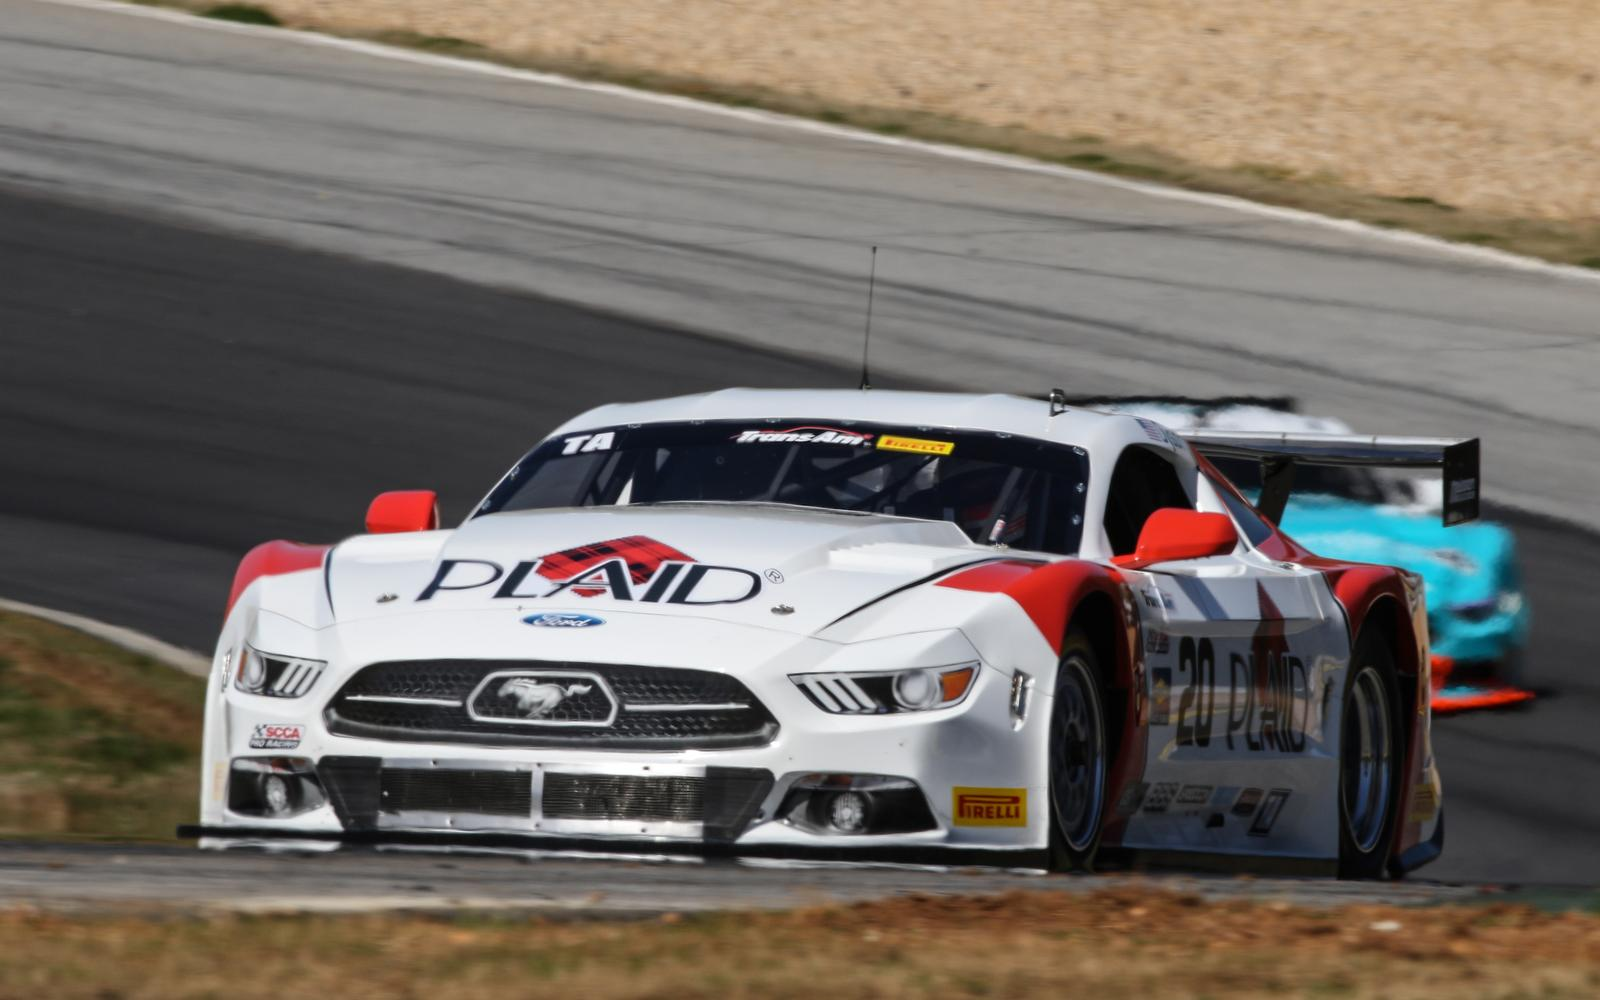 Hot, Action-Packed Summer Continues for Chris Dyson with Trans Am at Pittsburgh and Mid-Ohio